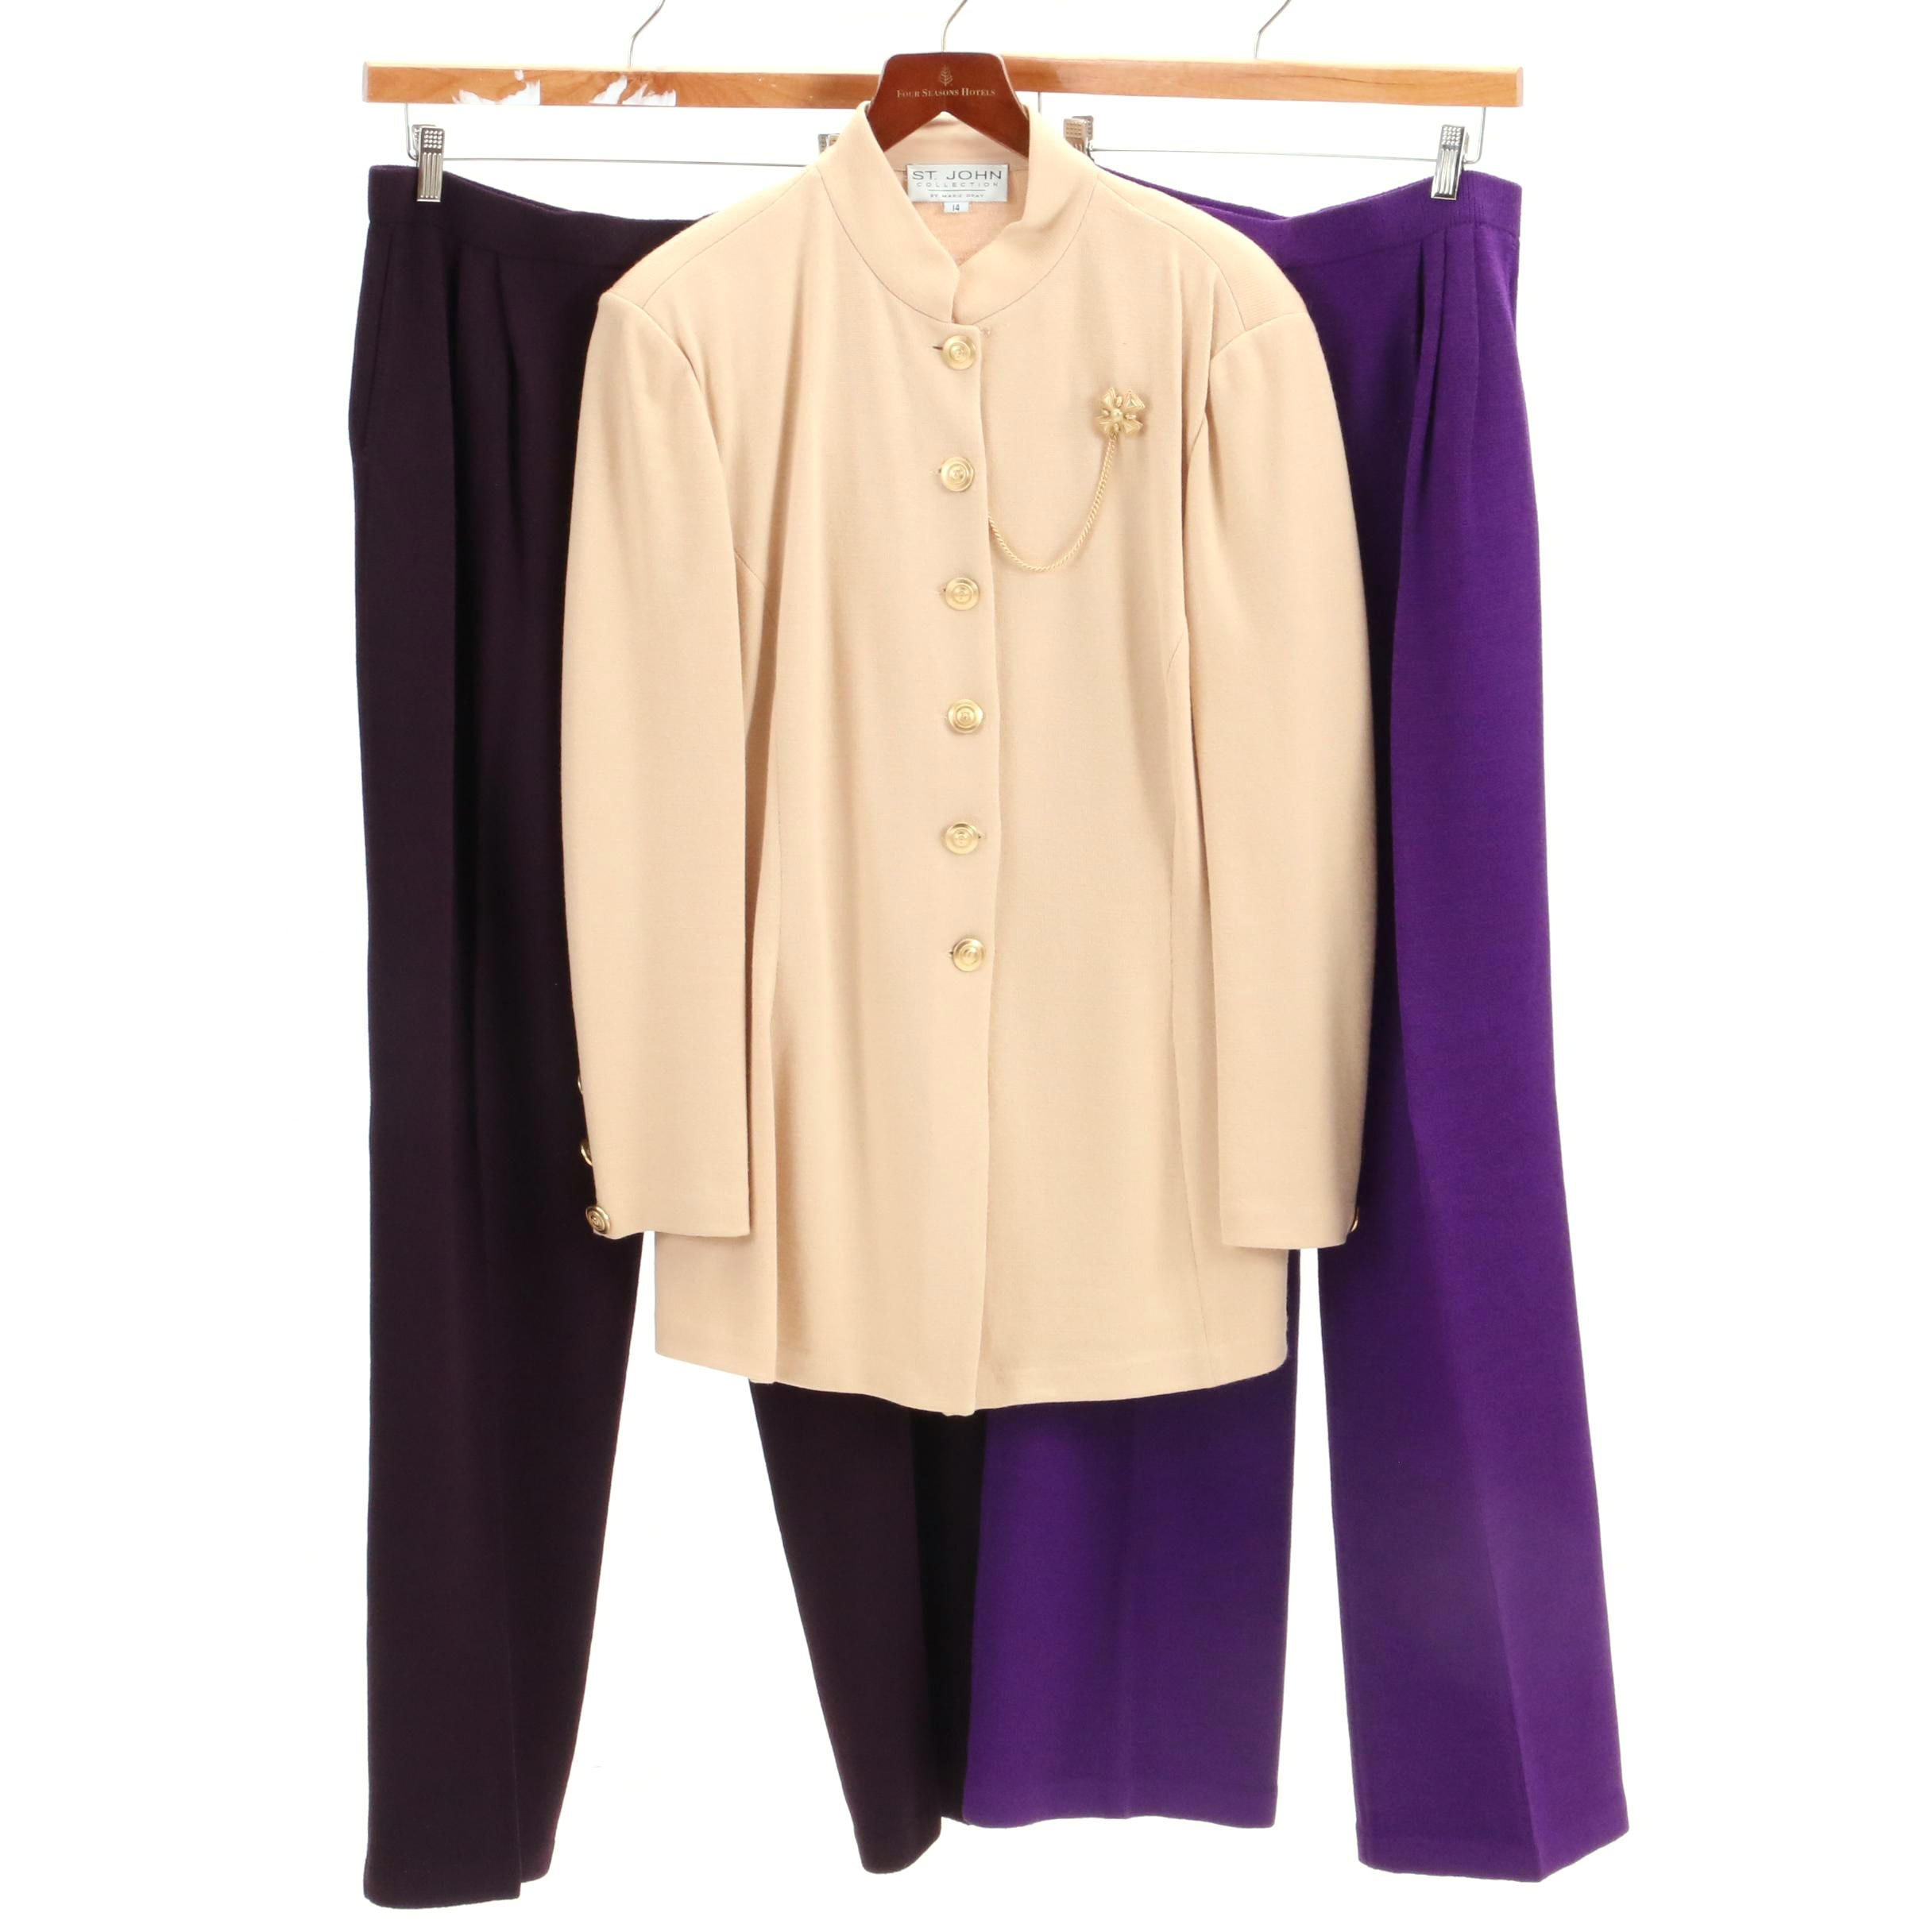 St. John Collection Clothing Separates